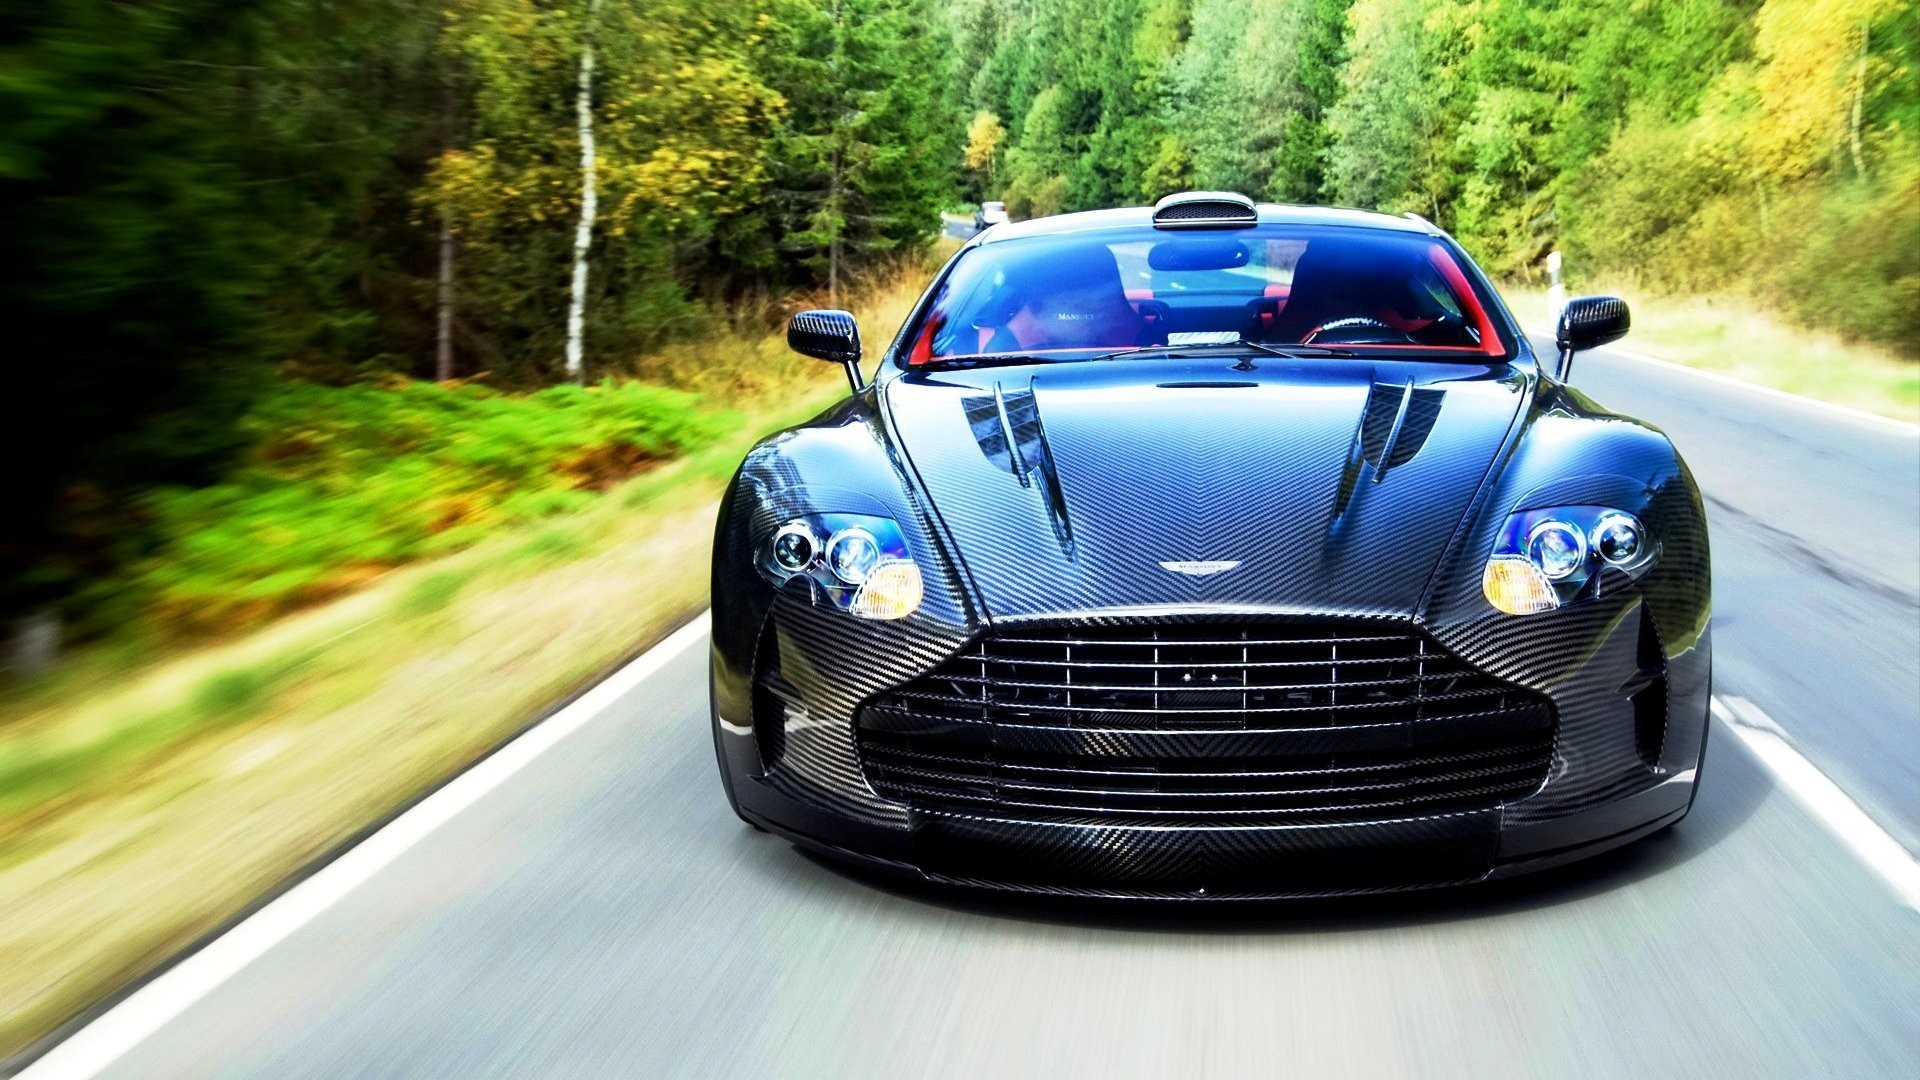 Carbon-Fiber-Aston-Martin-1920-x-1080-wallpaper-wpc5803269